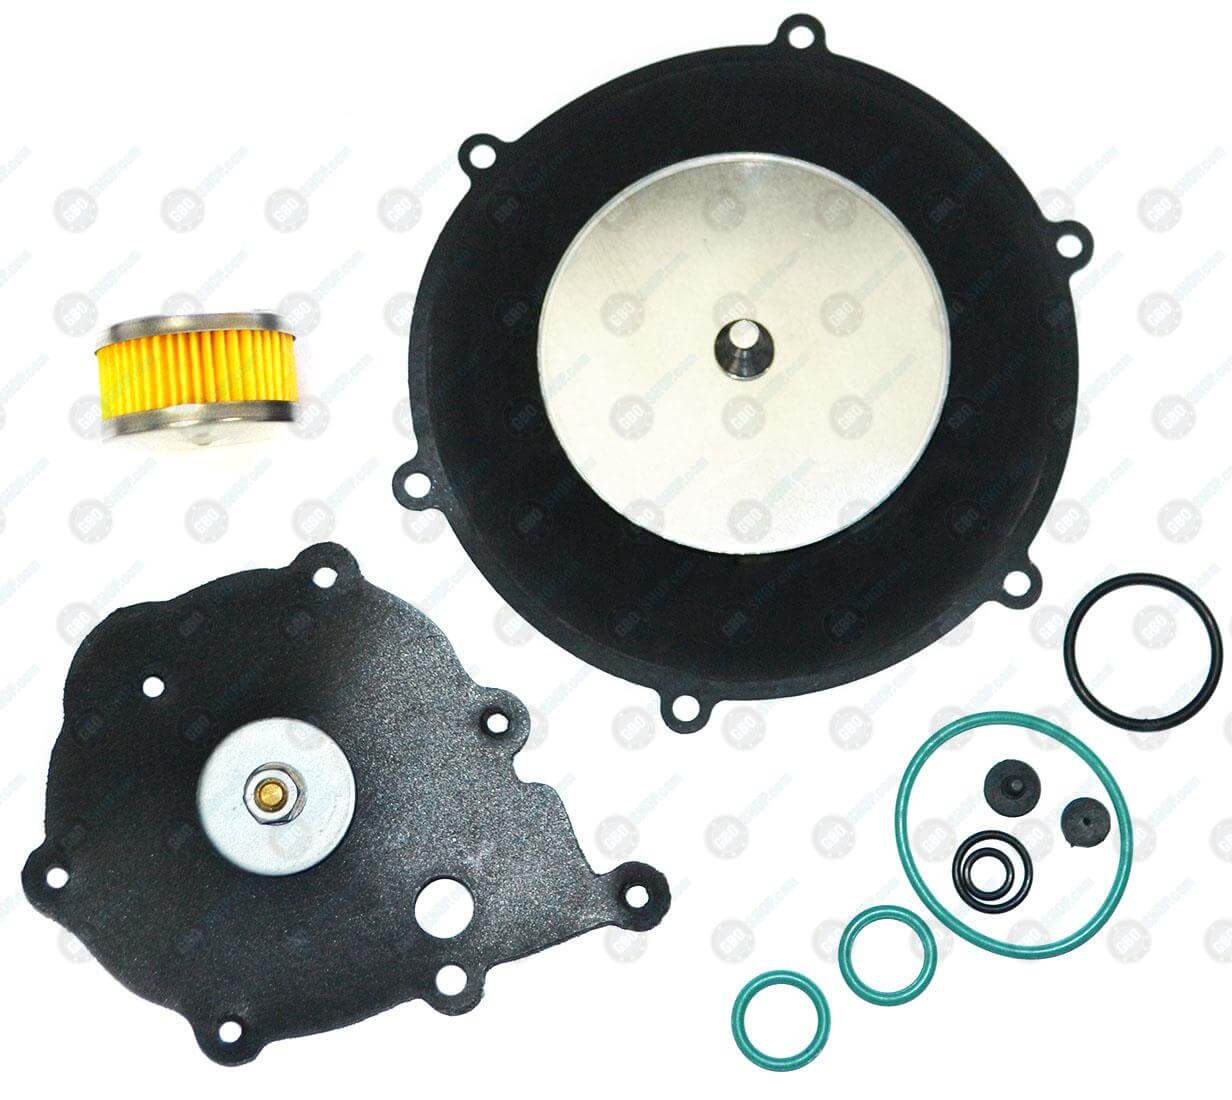 https://gboshop.com/image/catalog/reductor/repair-kit/Tom-AT07-repair-kit-filter.jpeg